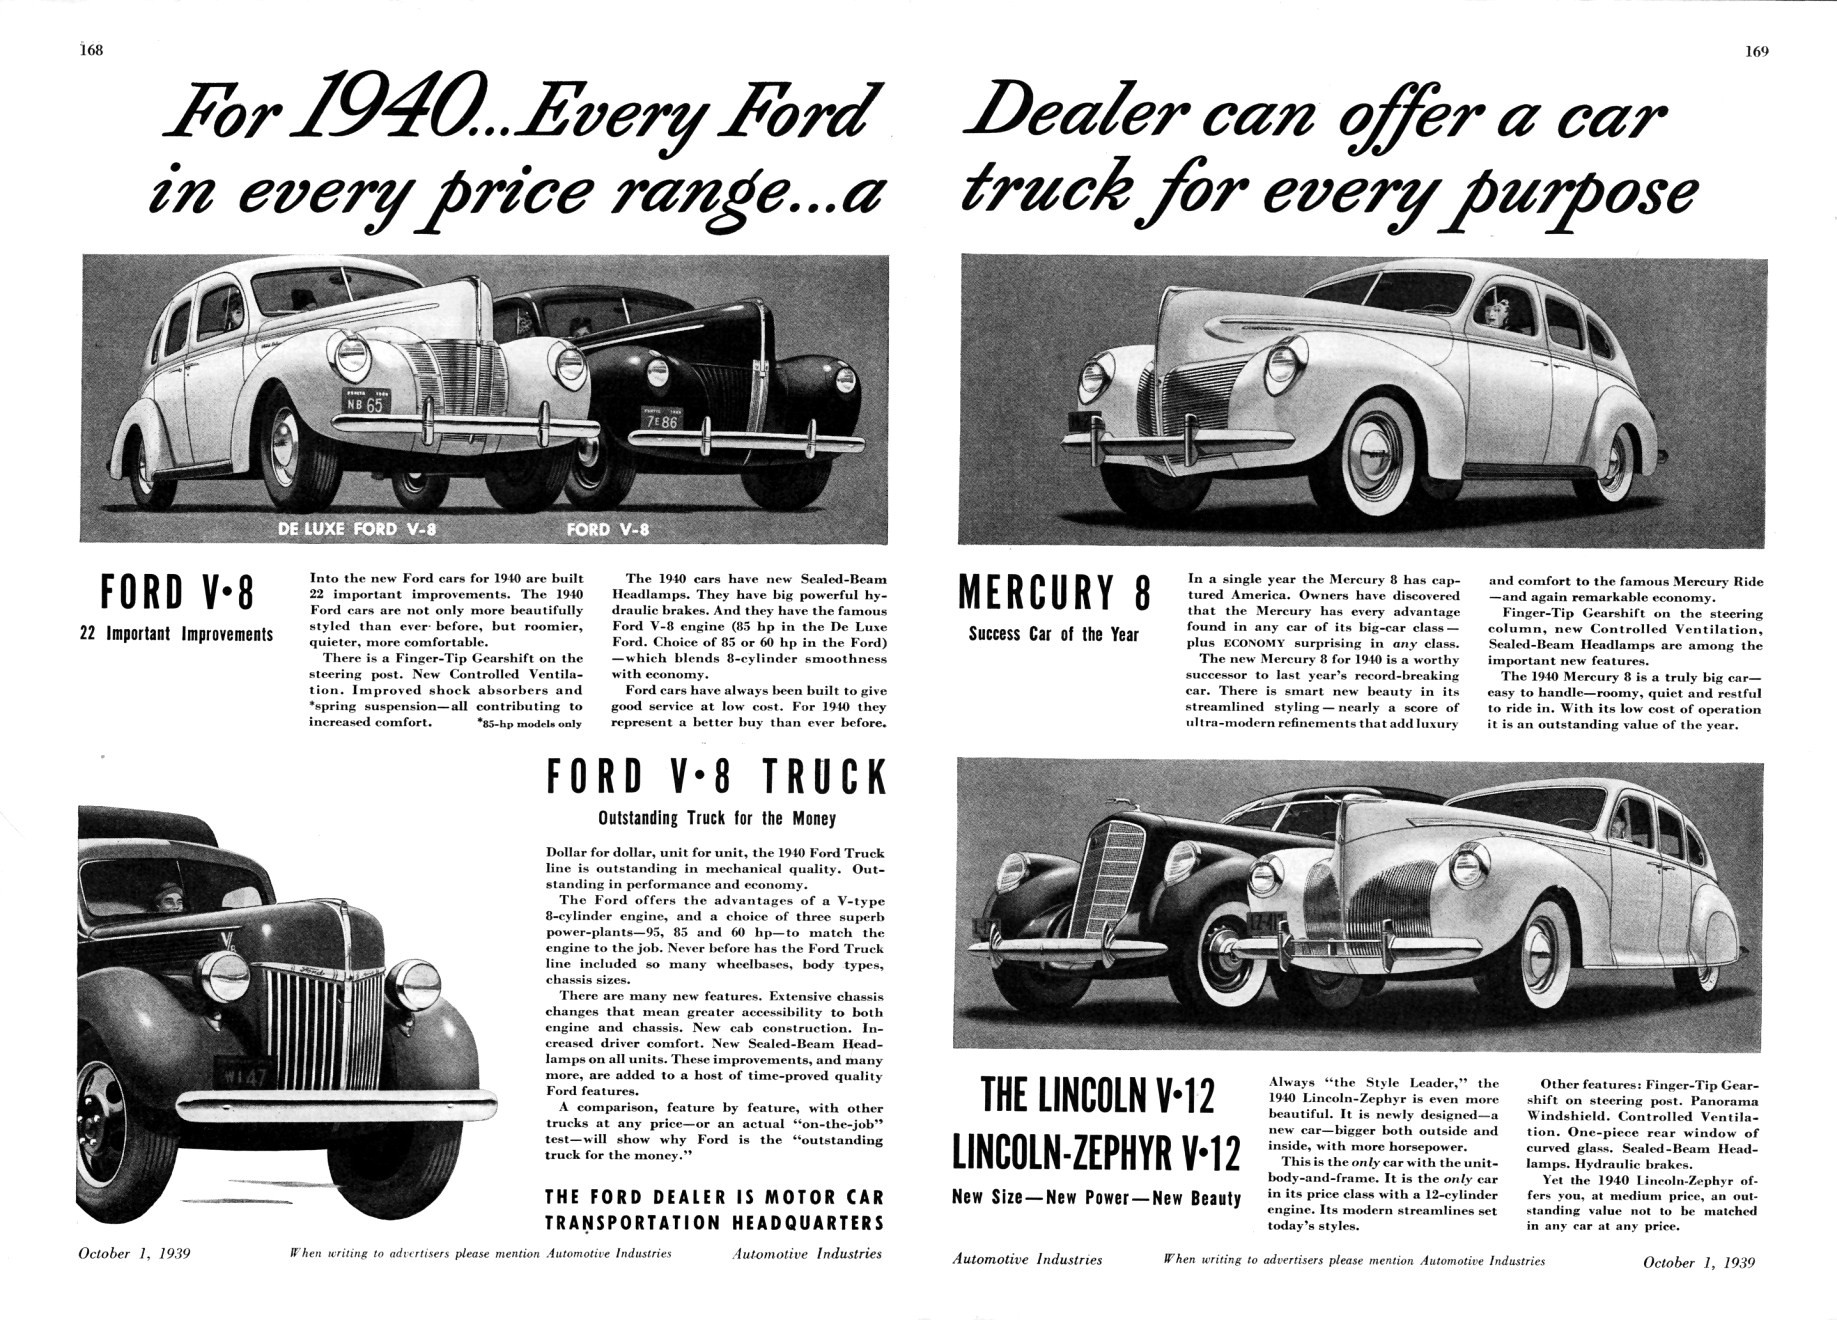 1940 fmc ad 01 for Ford motor company corporate